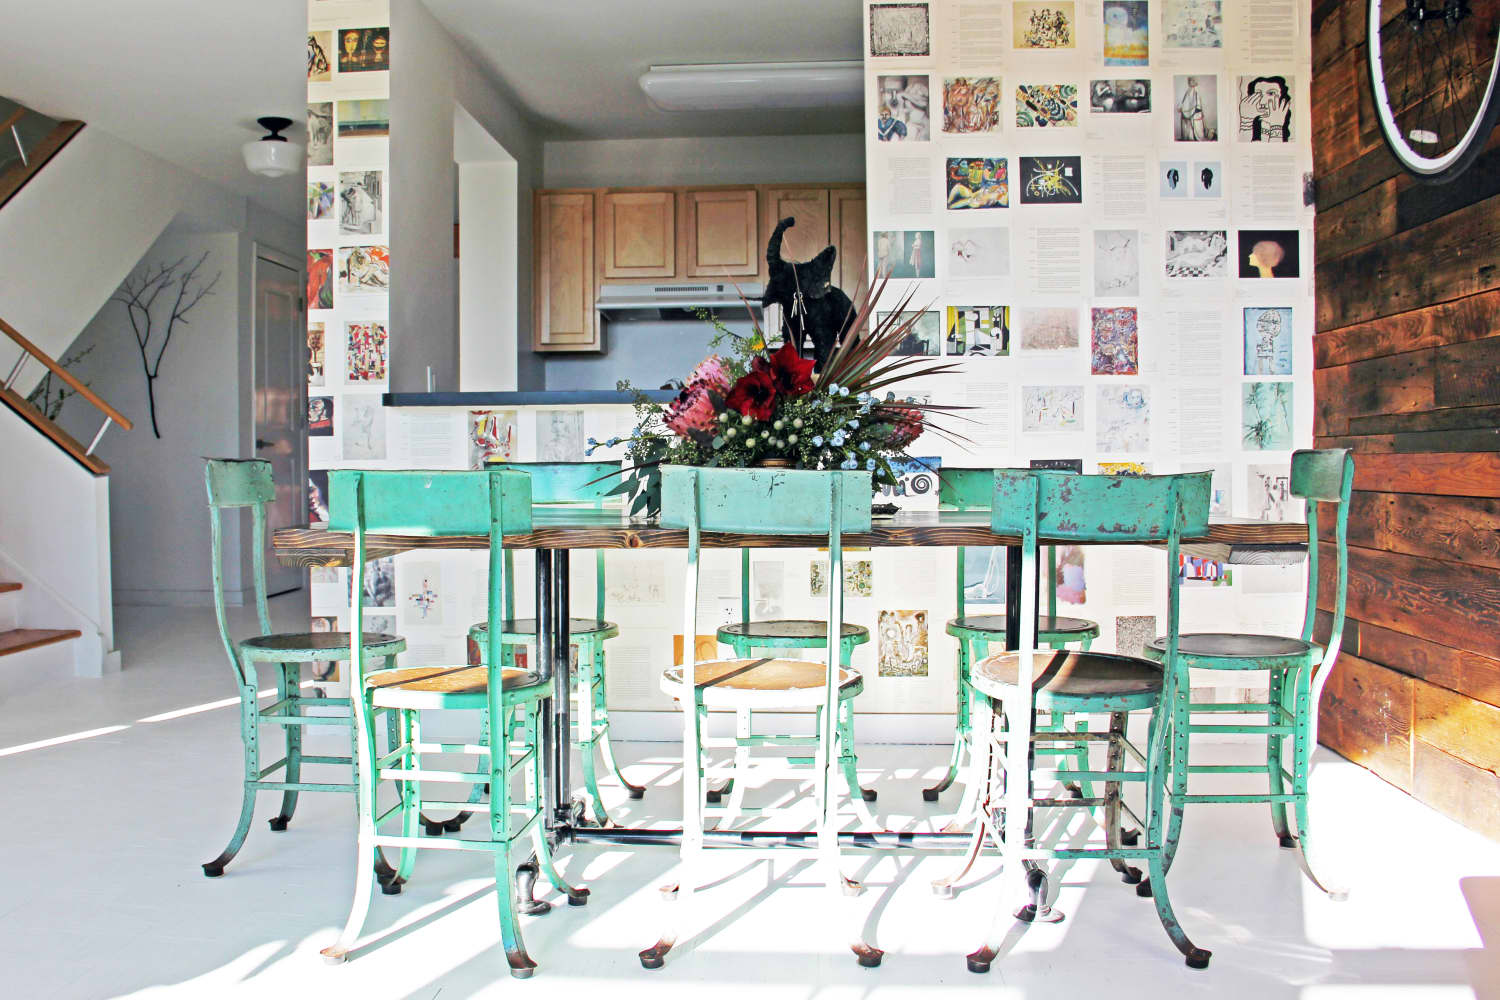 Real Life Decorating: Ideas From Our House Tours That Cost Next to Nothing